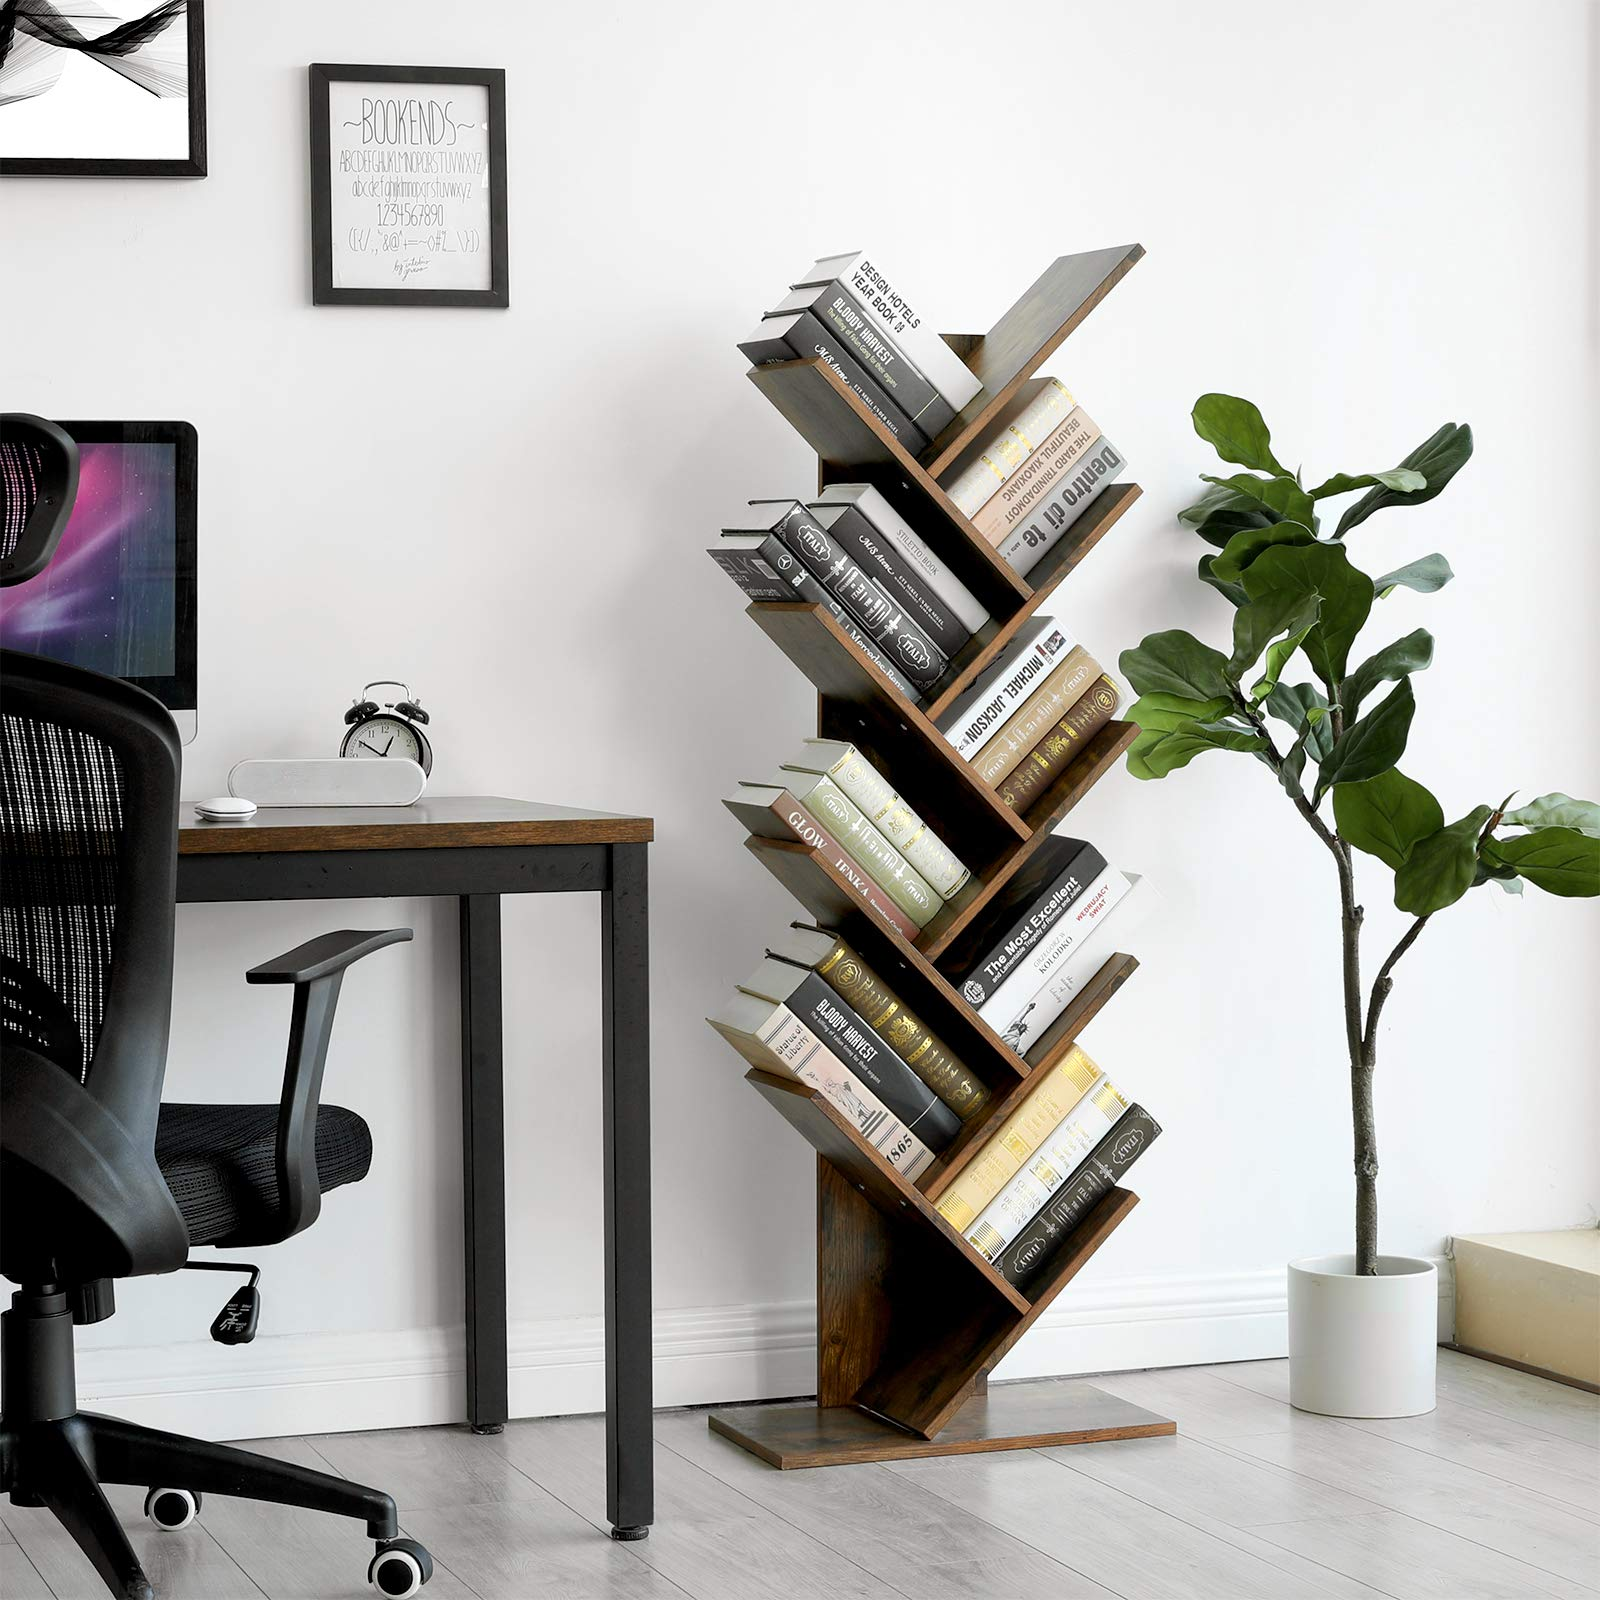 VASAGLE Tree Bookshelf, 8-Tier Floor Standing Bookcase, with Wooden Shelves for Living Room, Home Office, Rustic Brown ULBC11BX by VASAGLE (Image #2)